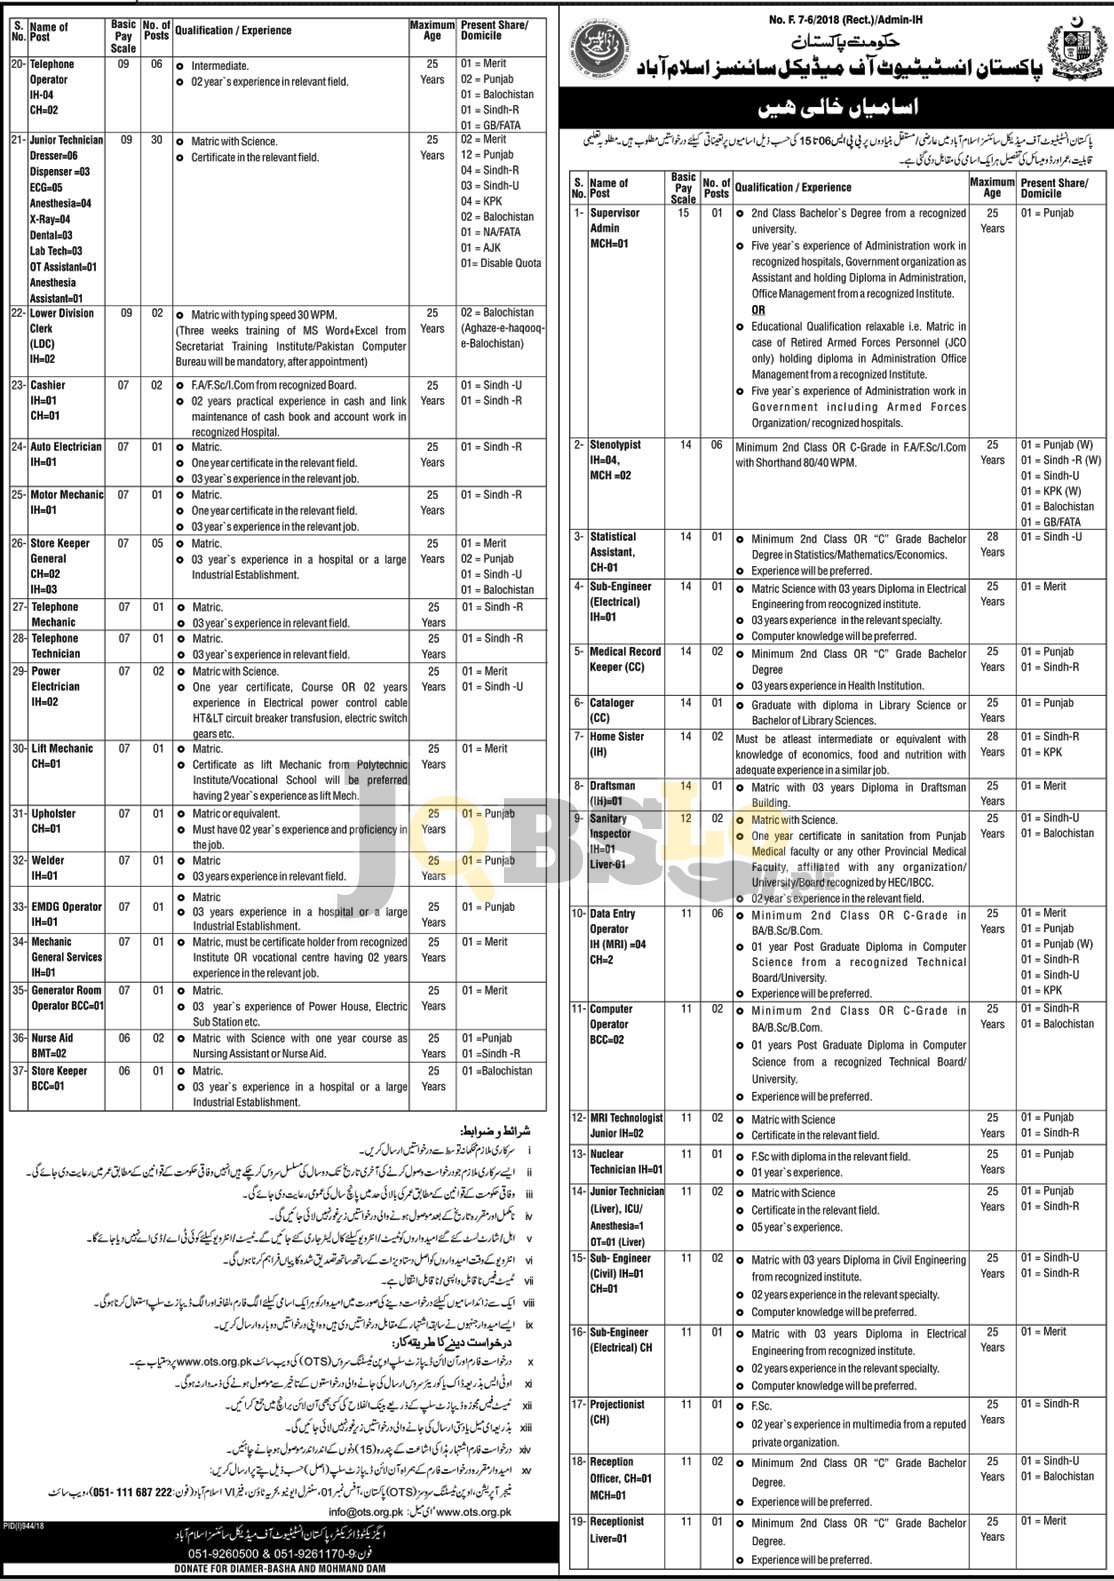 www.pims.gov.pk Jobs 2018 Pakistan Institute of Medical Sciences